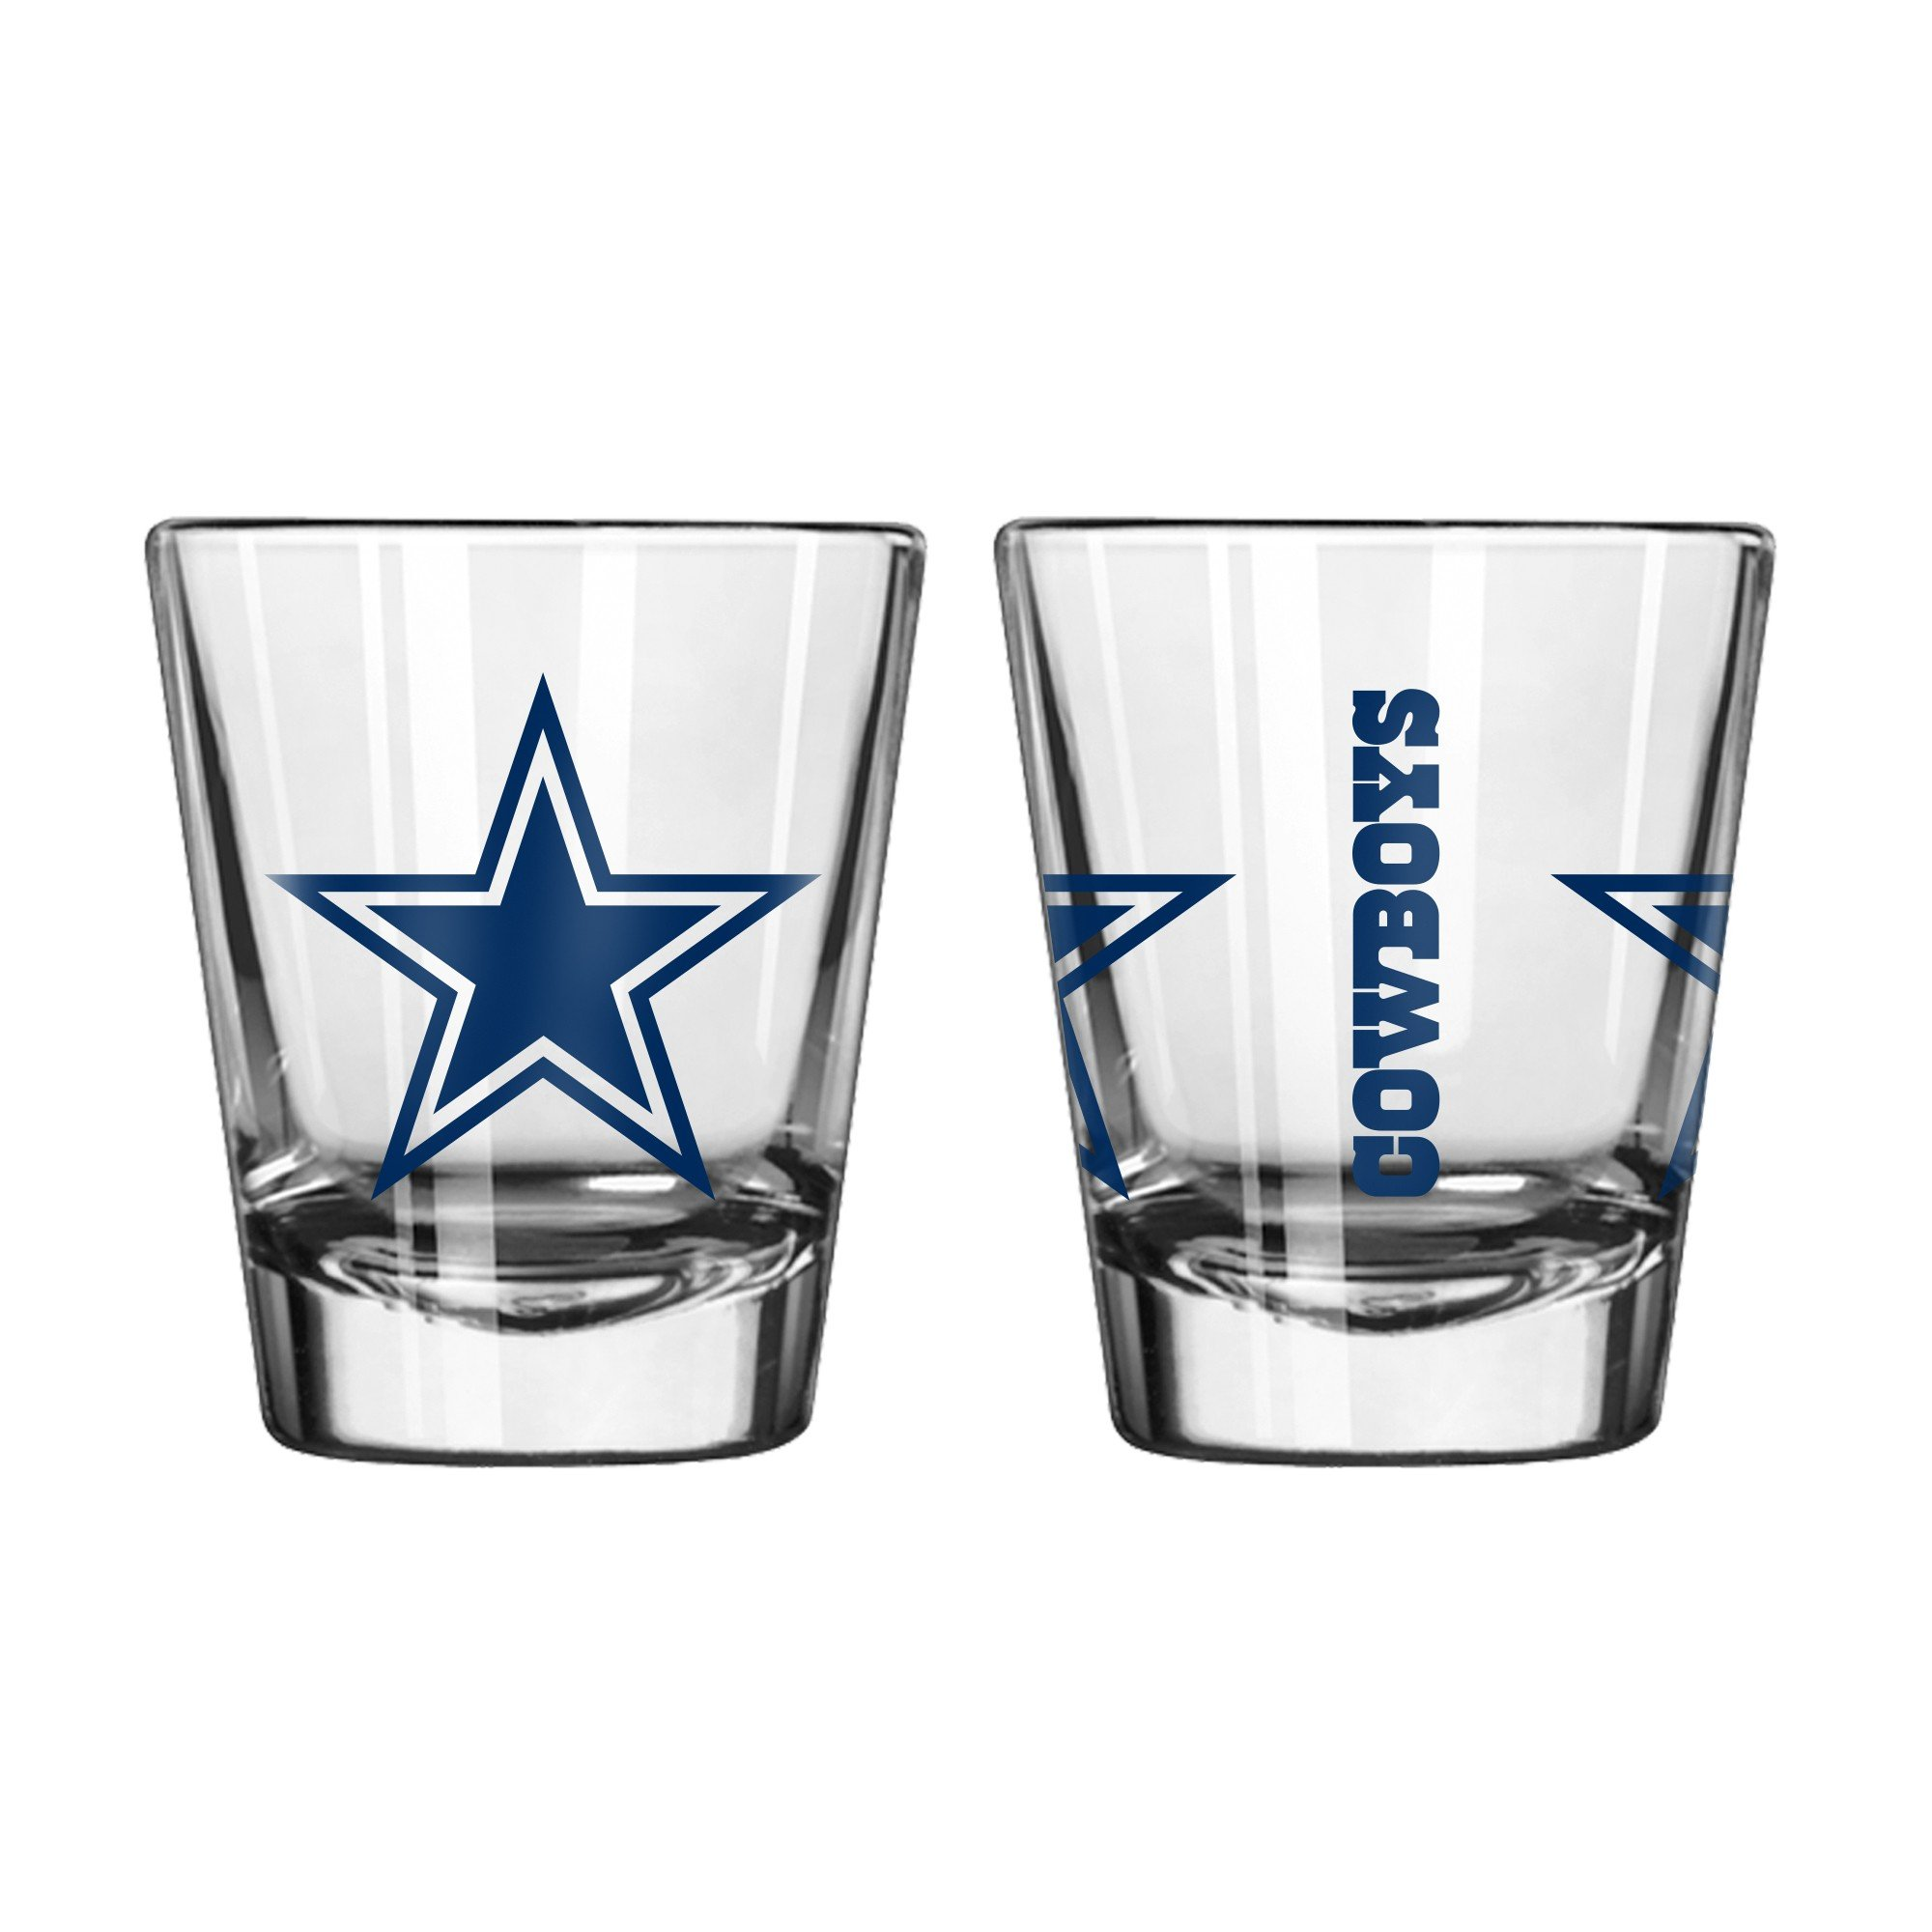 Official Fan Shop Authentic NFL Logo 2 oz Shot Glasses 2-Pack Bundle. Show Team Pride at home, your Bar or at the Tailgate. Gameday Shot Glasses for a goodnight (Dallas Cowboys)